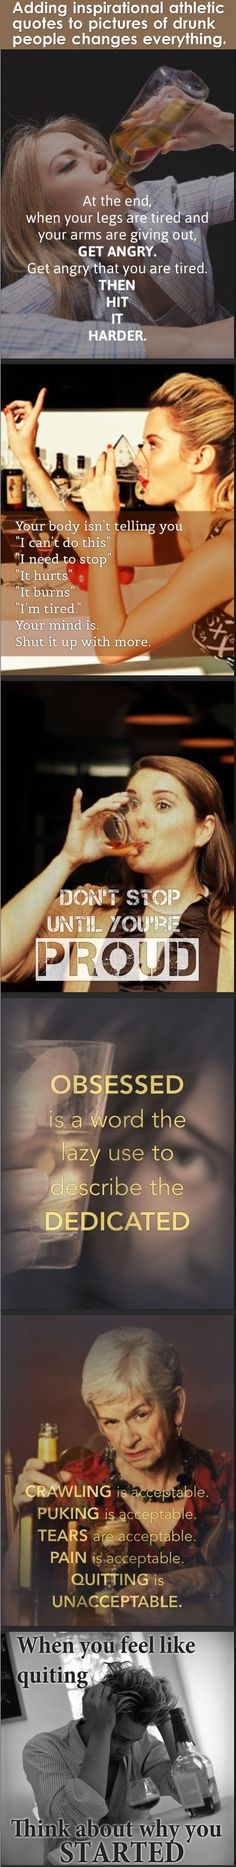 Adding inspirational athletic #quotes to pictures of drunk people changes everything about them.